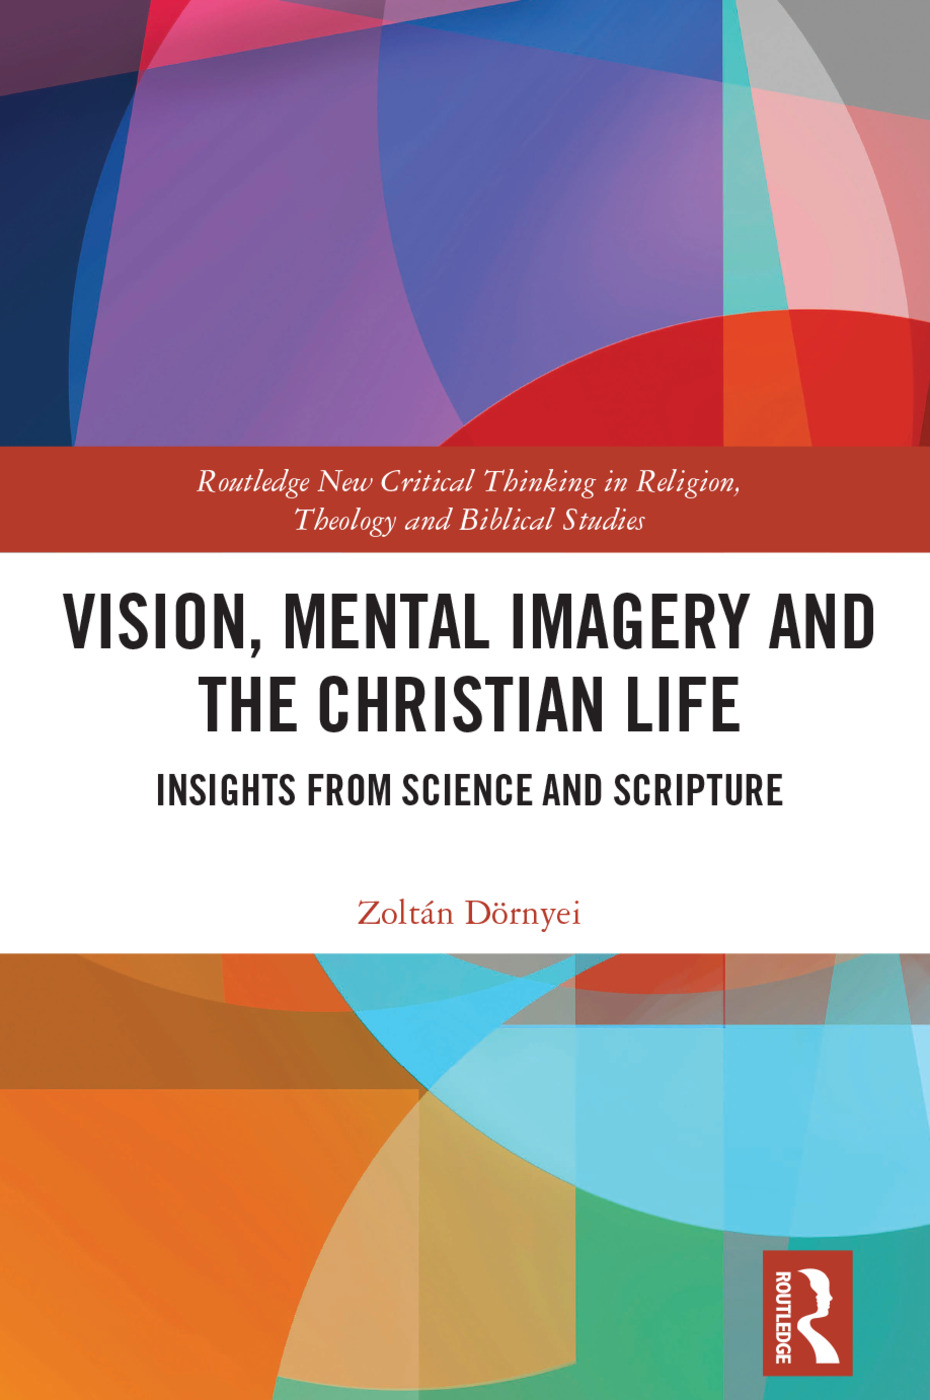 Vision, Mental Imagery and the Christian Life: Insights from Science and Scripture book cover